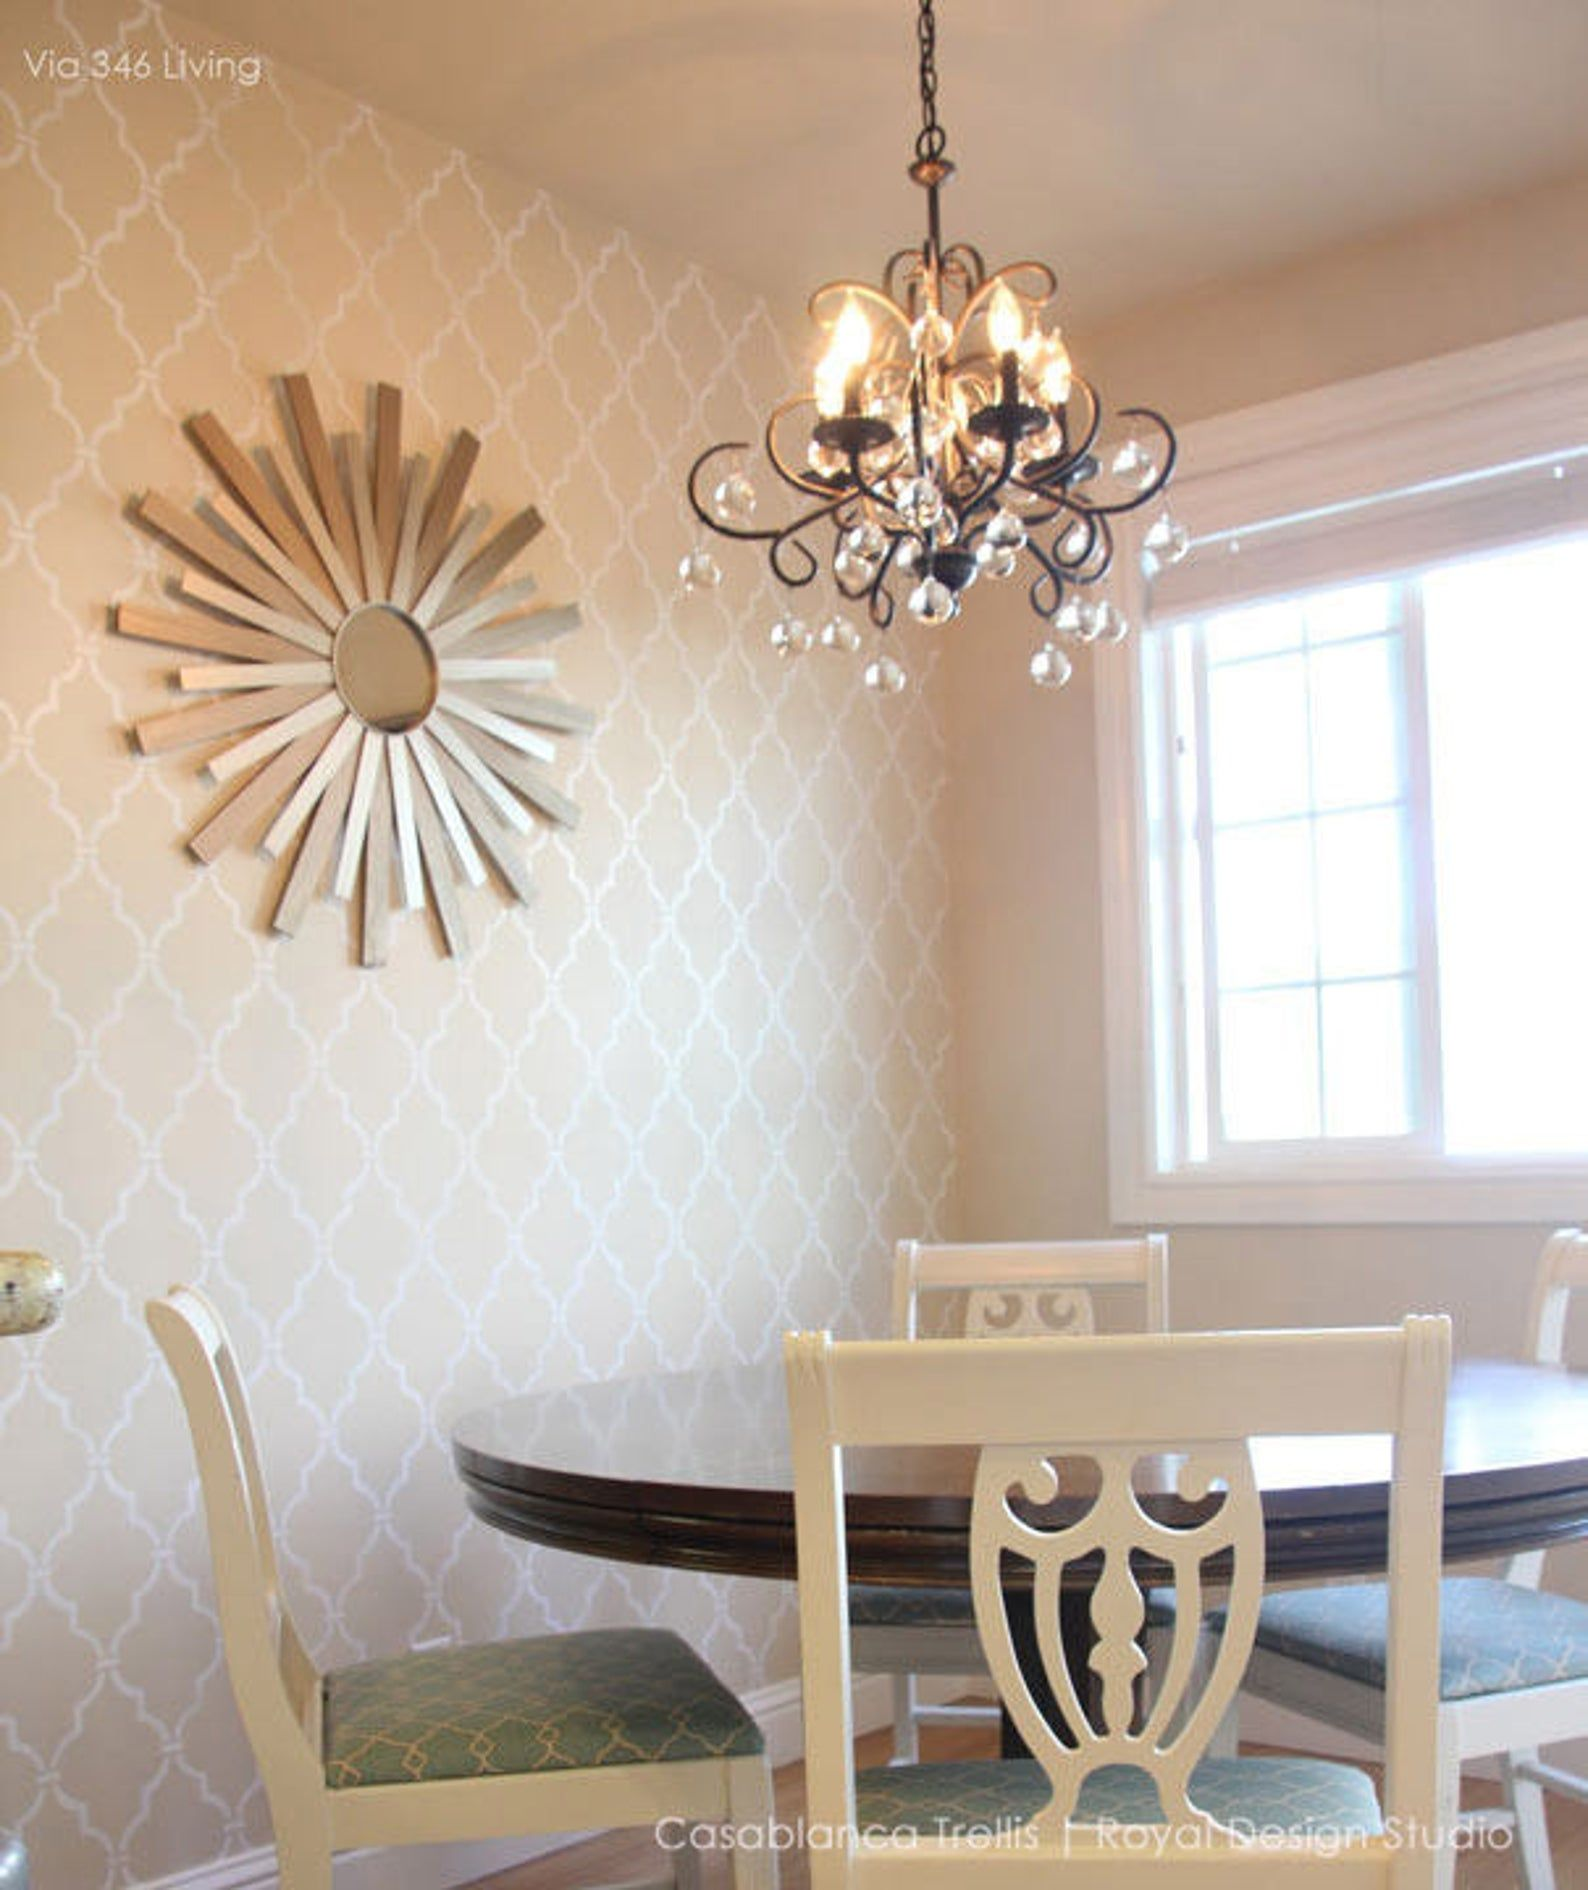 Large Trellis Wall Stencil - Custom Mural Decor for Feature Wall Art - DIY Wall Stenciling Patterns